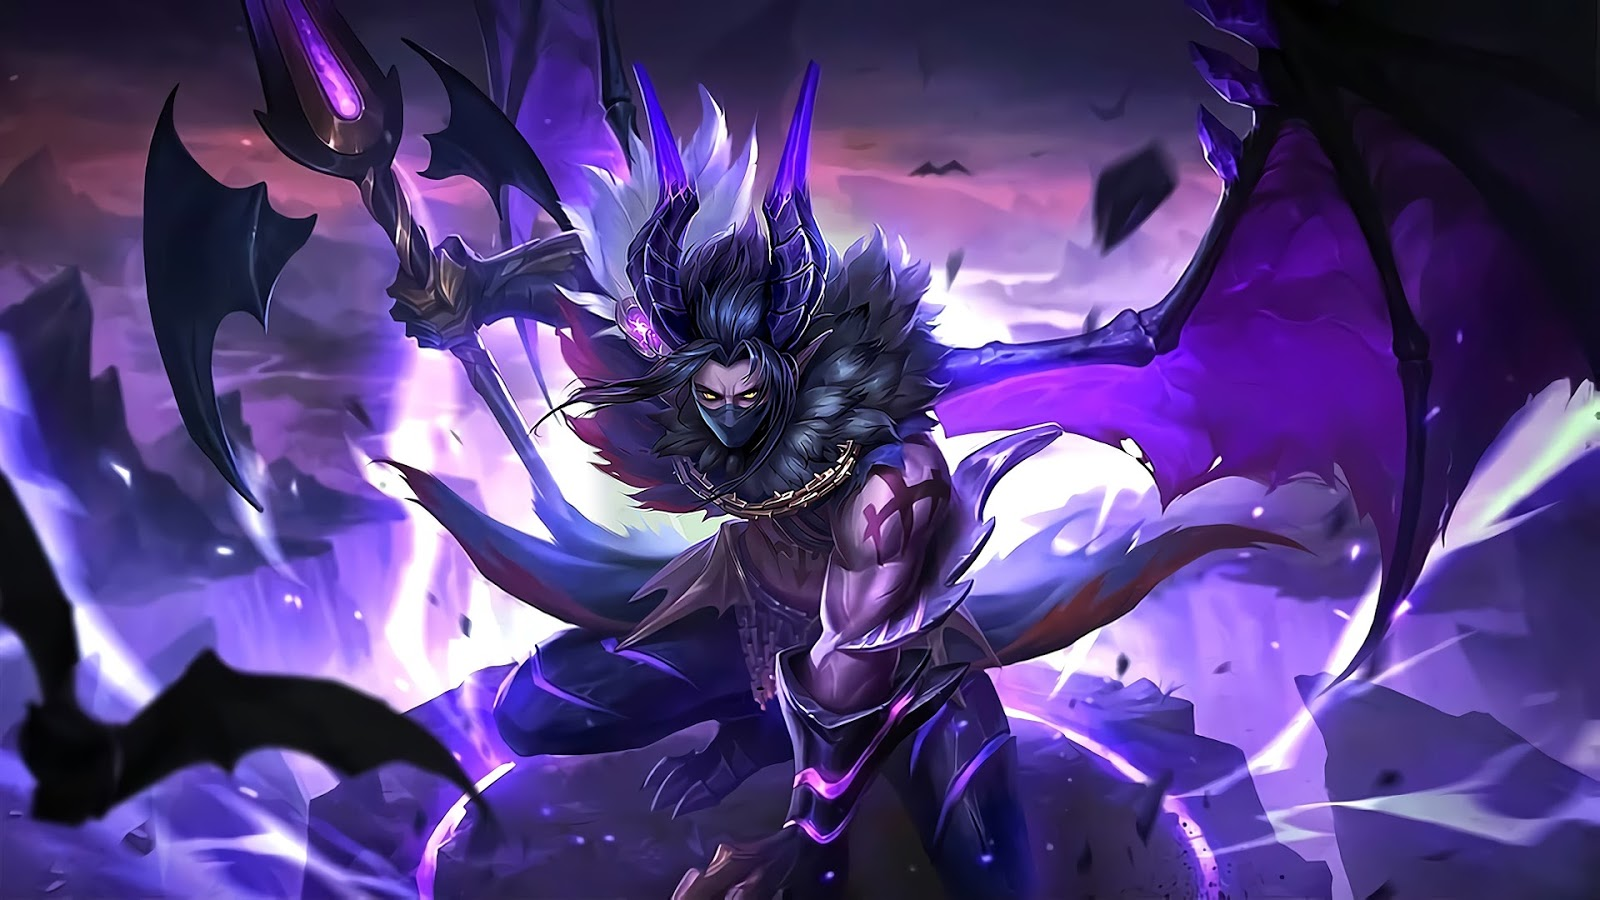 Wallpaper Moskov Twilight Dragon Skin Mobile Legends Full HD for PC